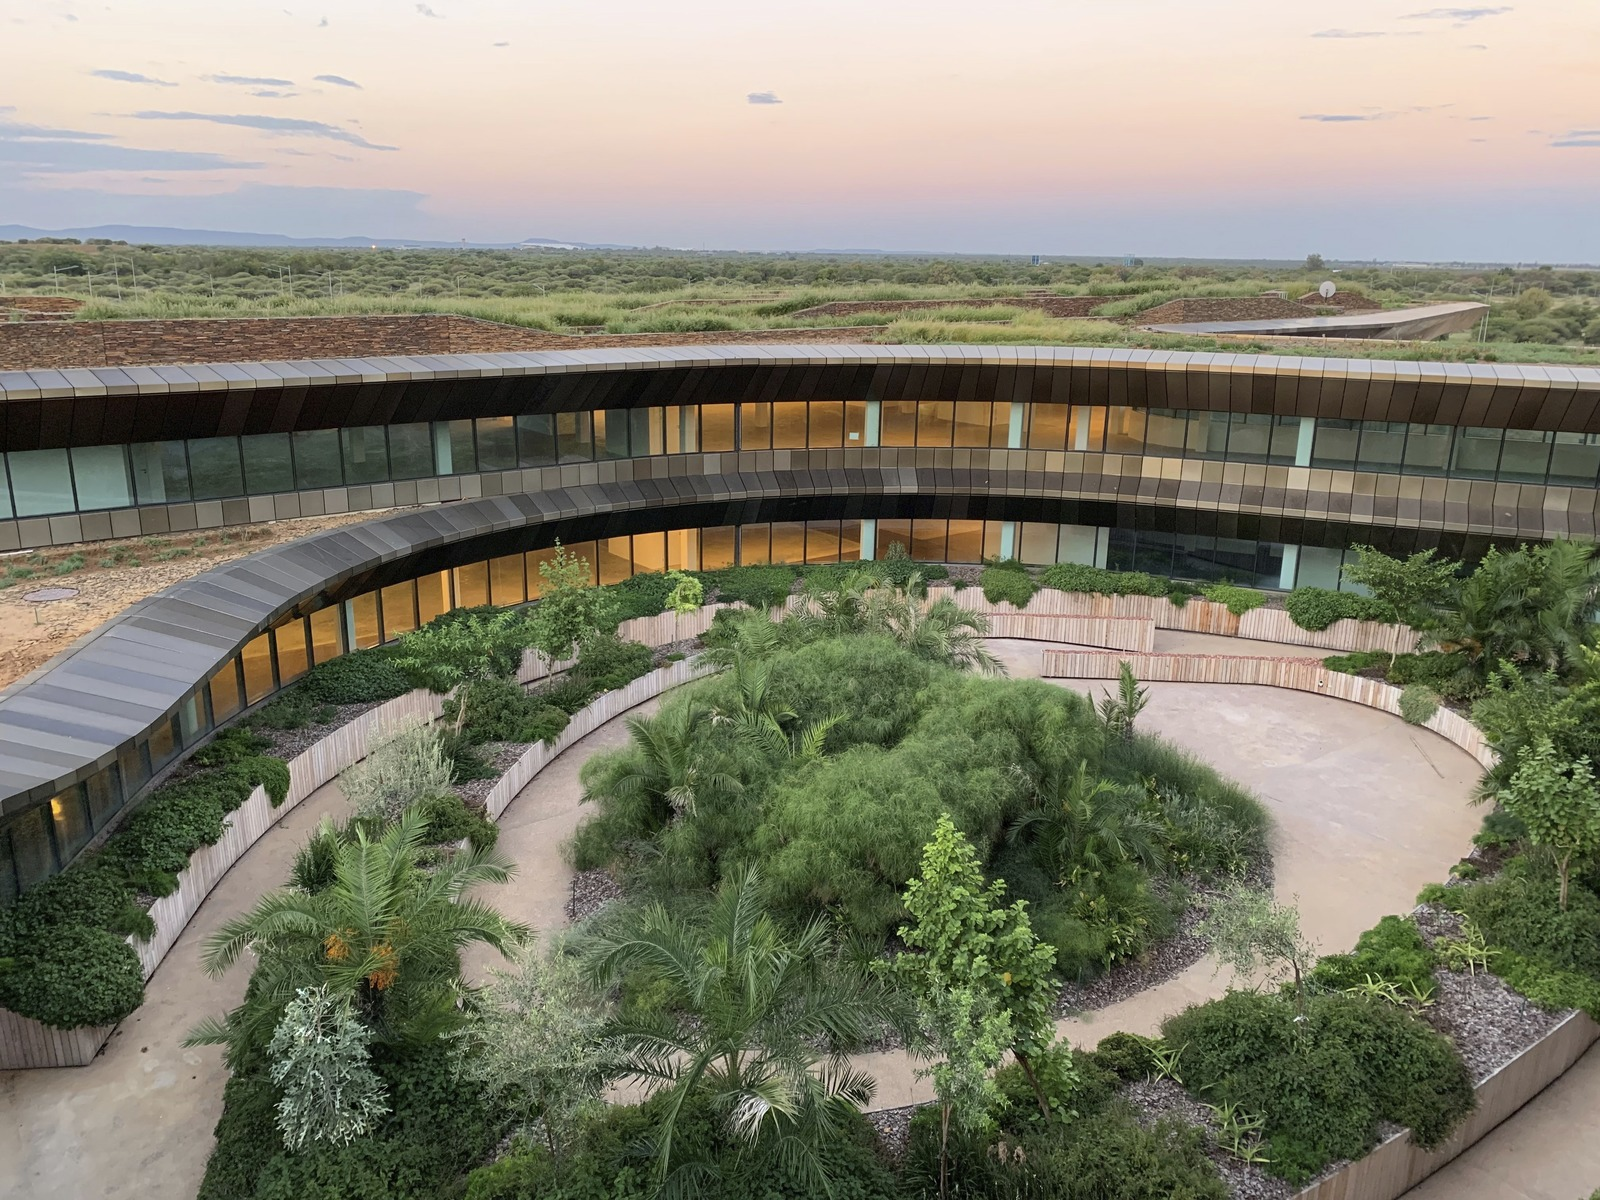 The Icon Building, located outside Botswana's capital city of Gabarone, boasts Africa's largest green roof. It's designed to be the anchor for a campus of the state-runBotswana Innovation Hub.